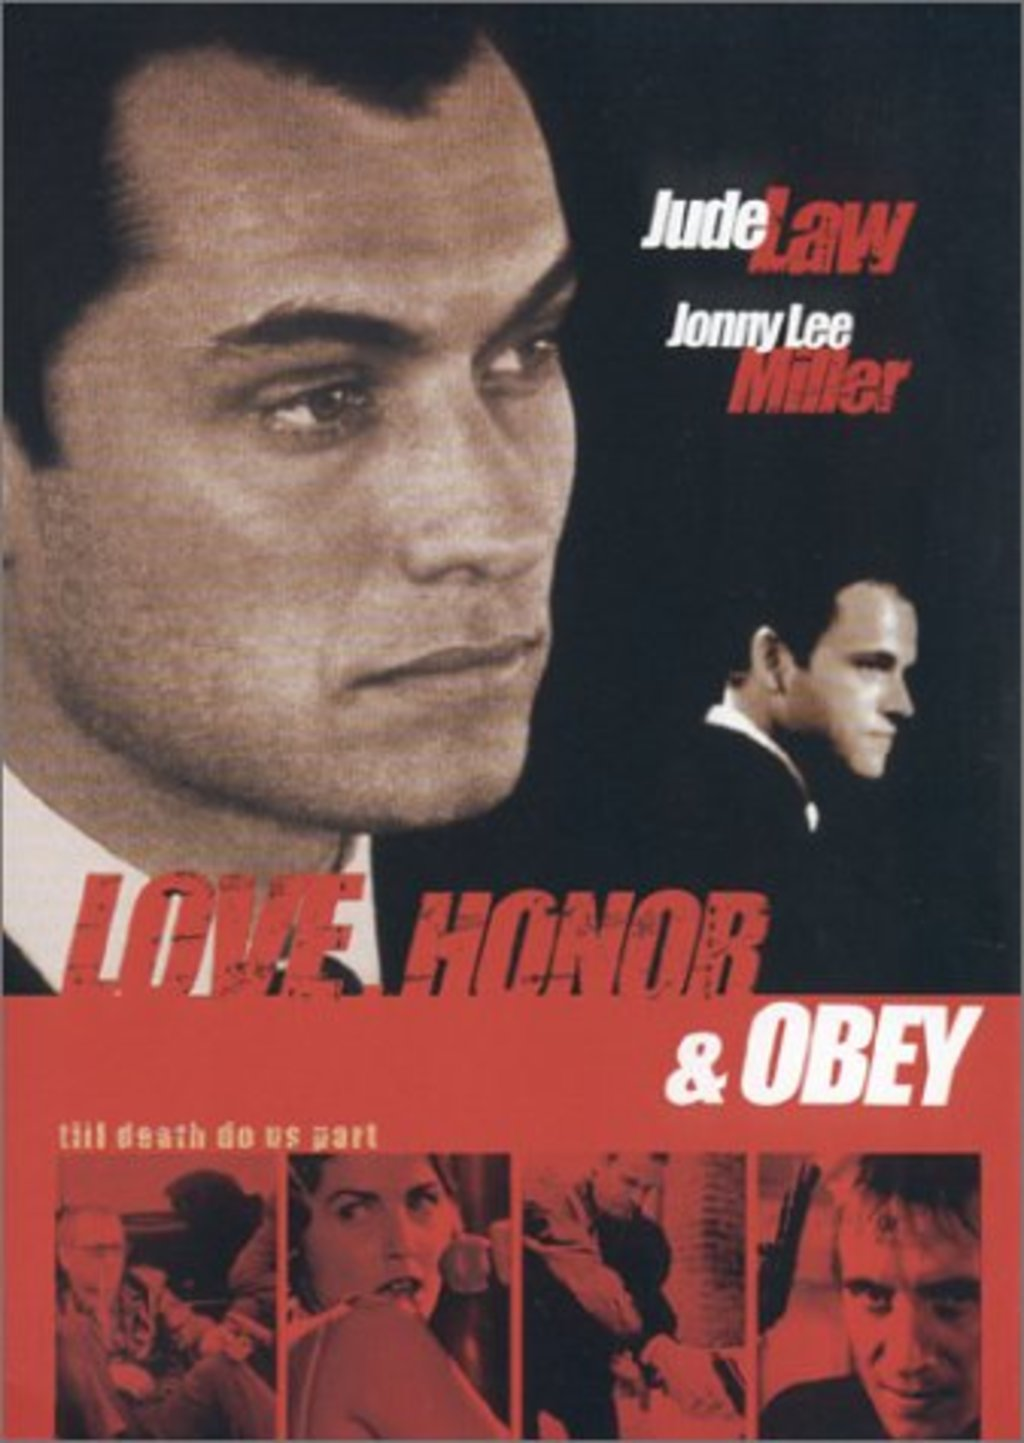 Love Honor Obey Movie HD free download 720p